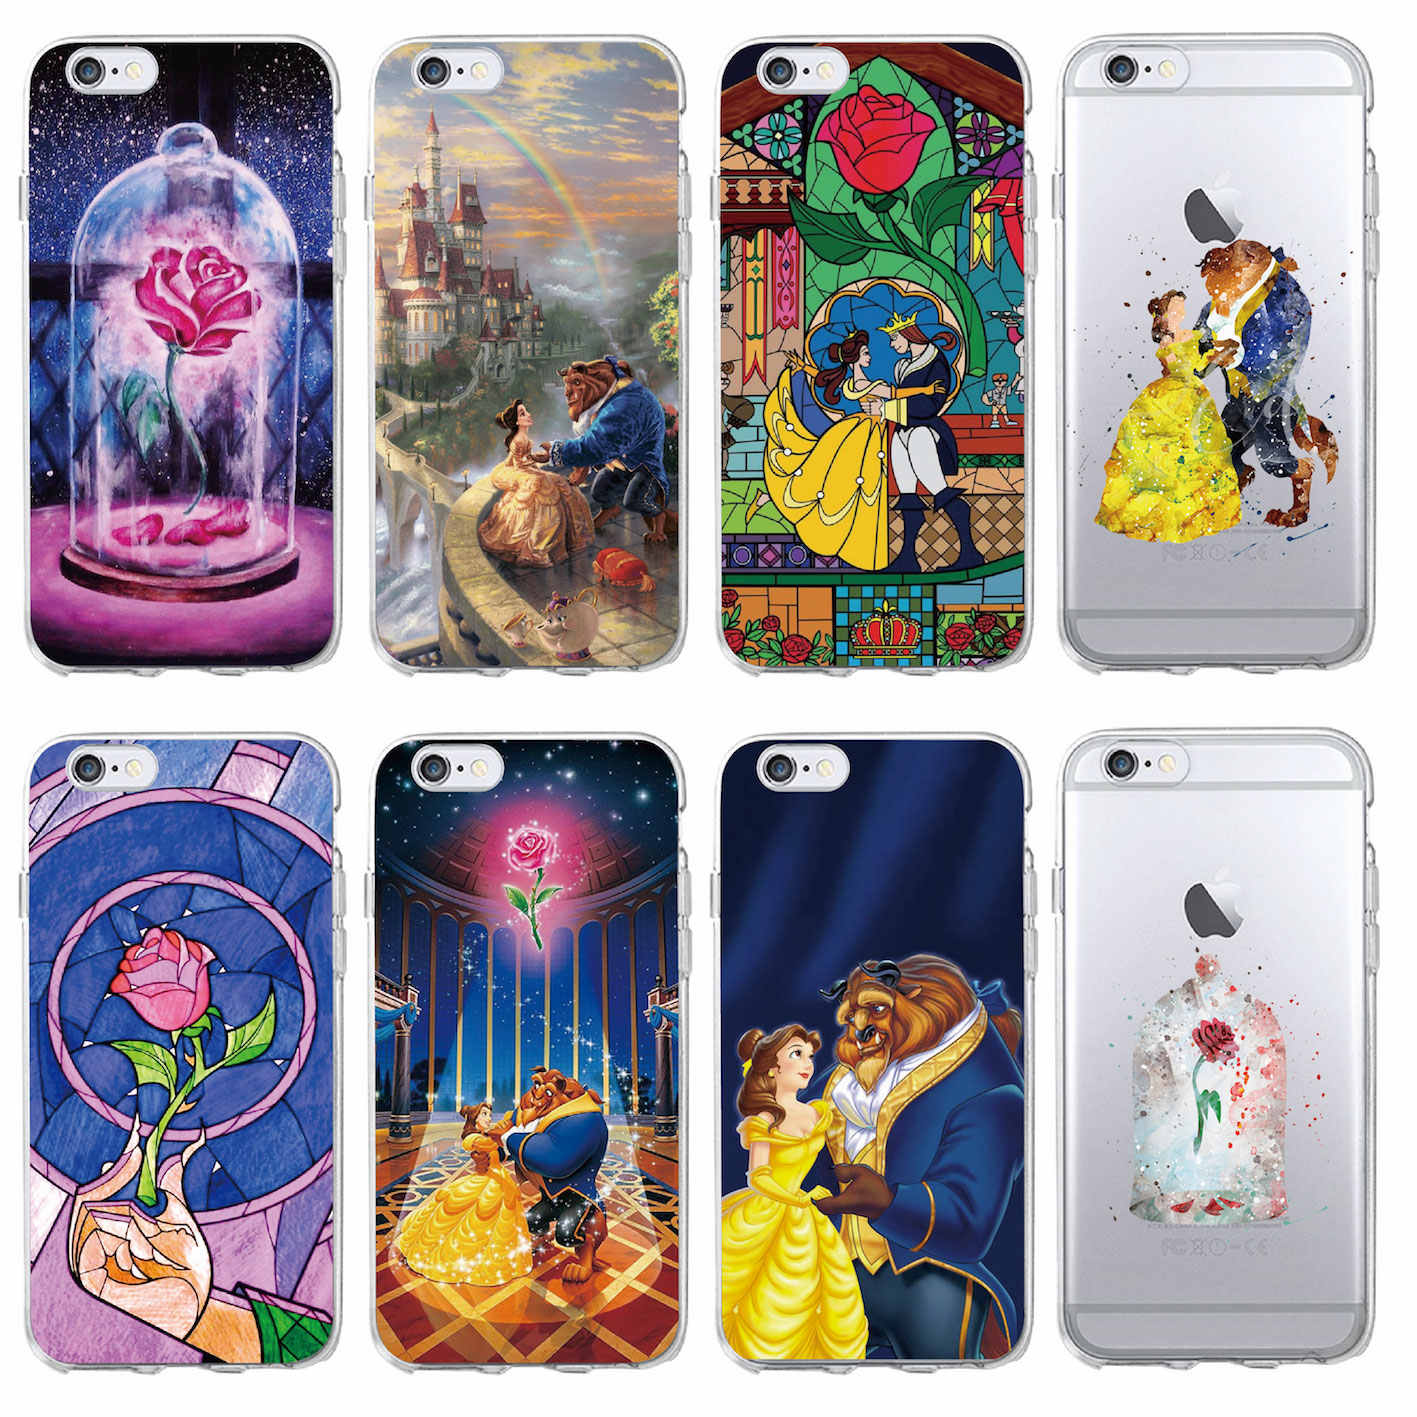 Disney Princess Belle Bella Beauty And The Beast iphone case